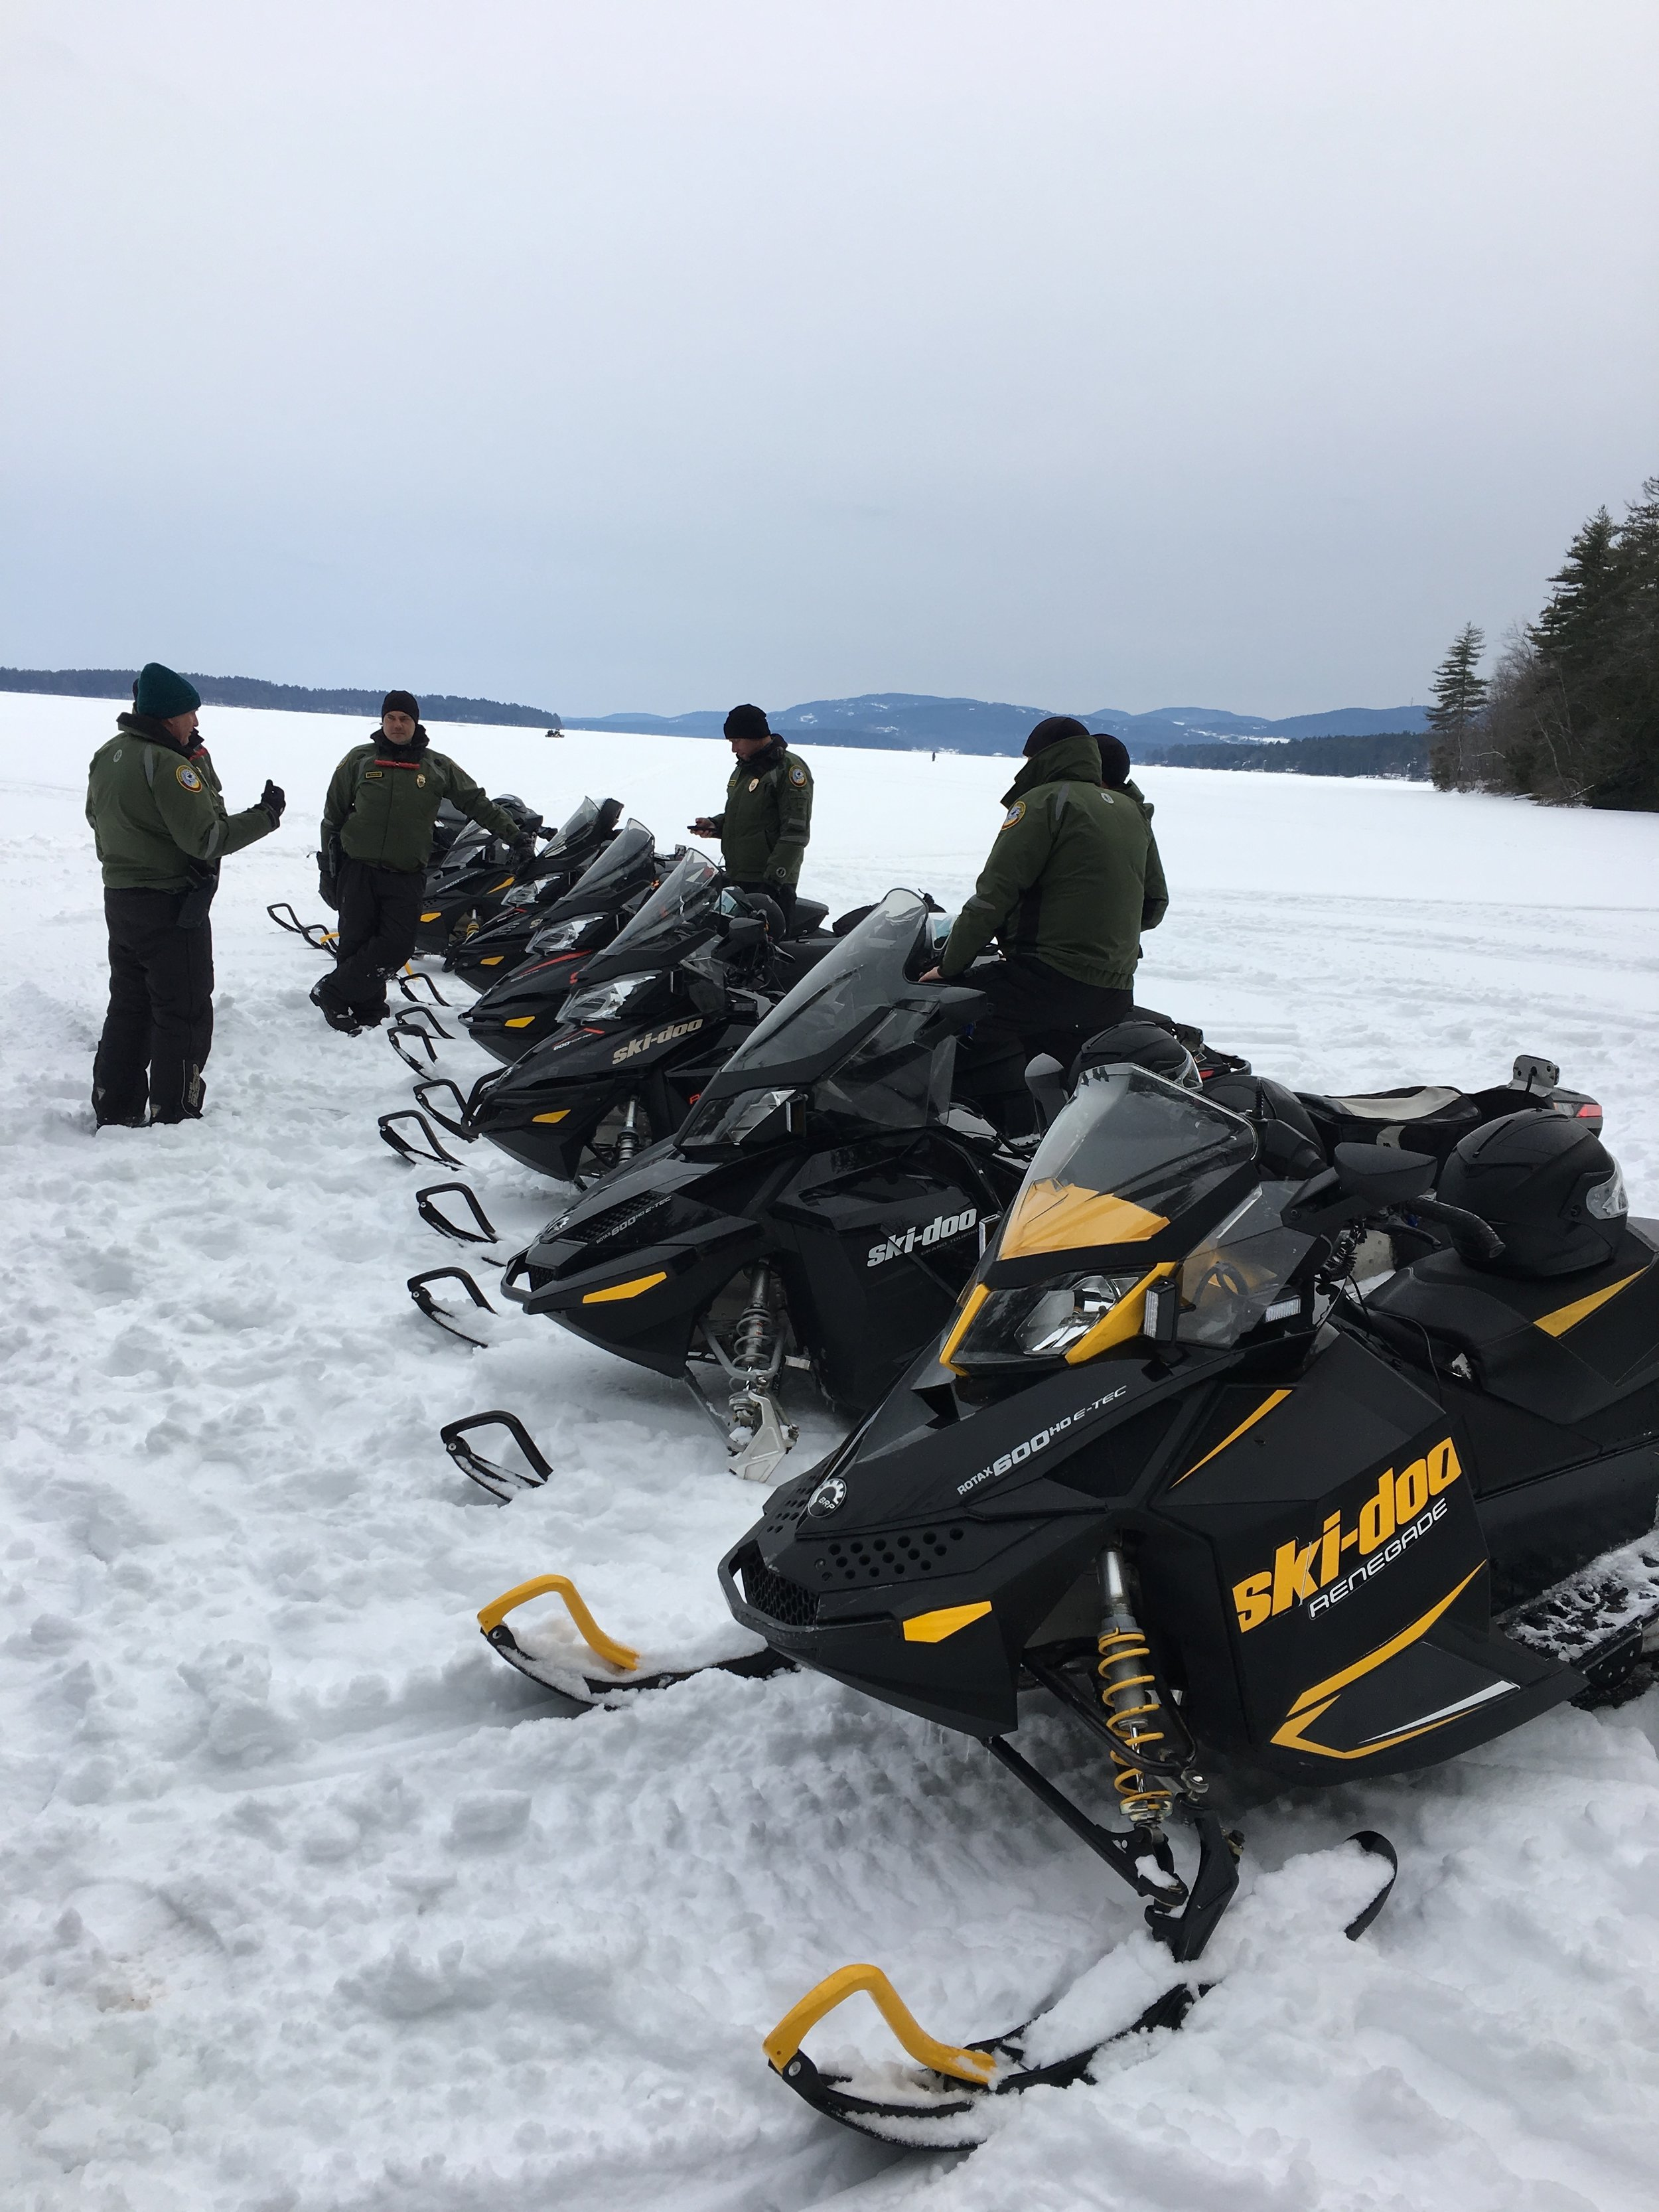 New Hampshire Fish and Game snowmobiles line up on the ice